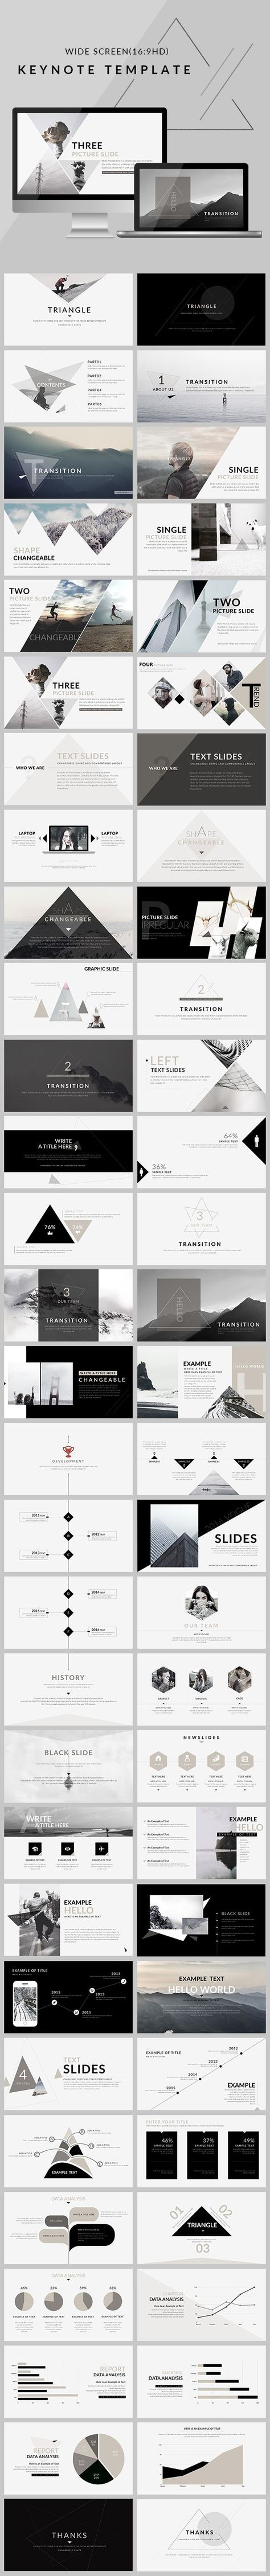 Triangle - Clean trend Keynote Template. Download here: http://graphicriver.net/item/triangle-clean-trend-keynote-template/16272633?ref=ksioks